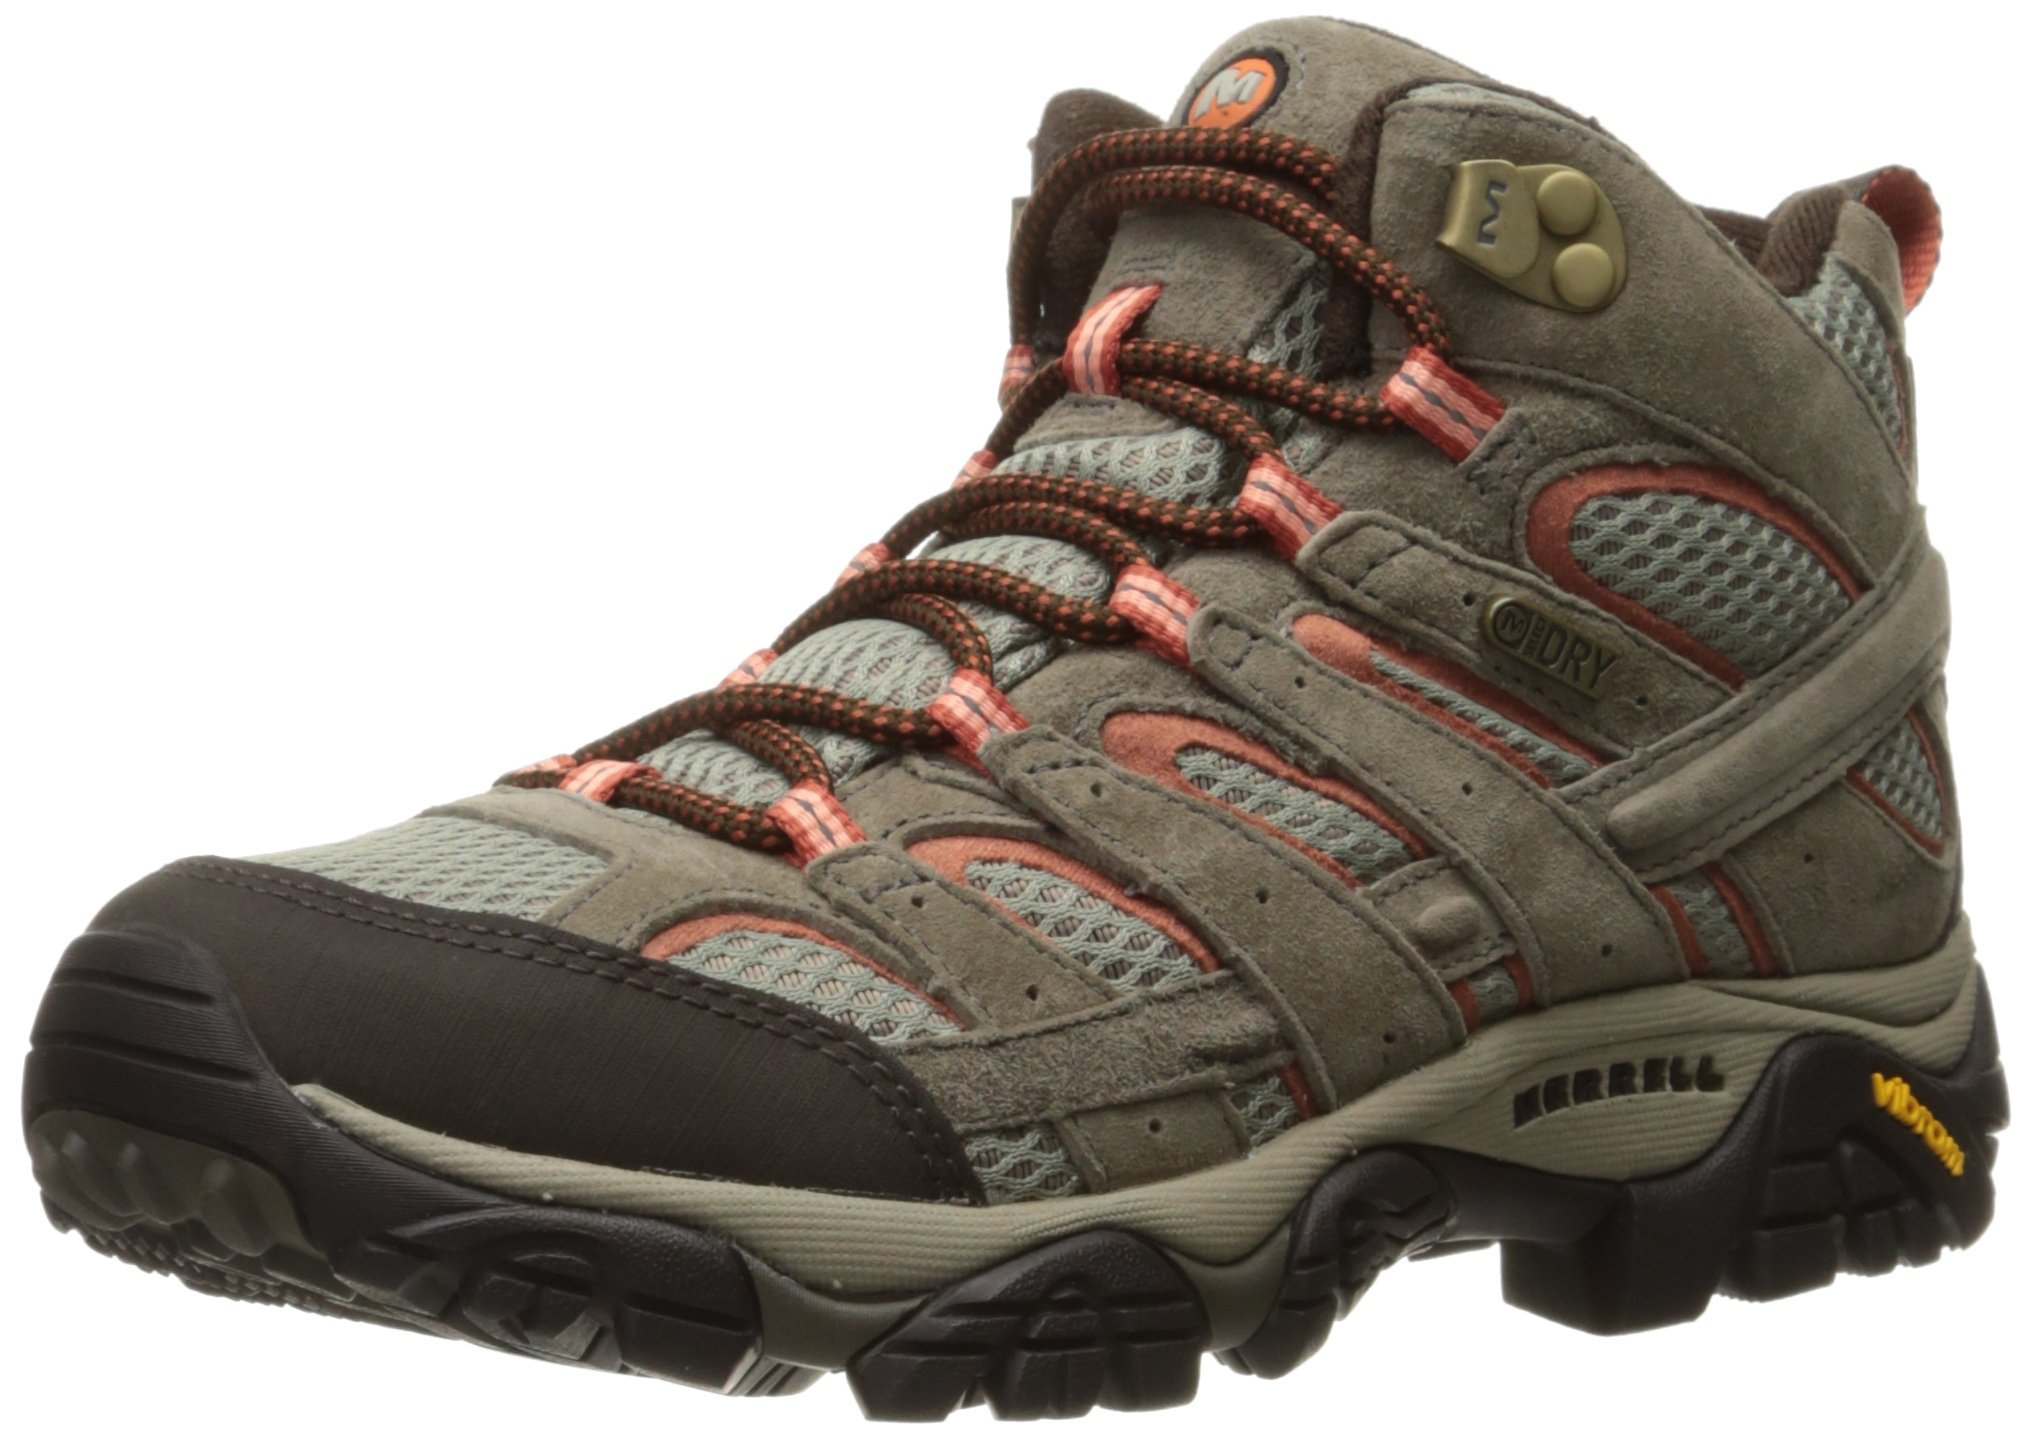 Merrell Women's Moab 2 Mid Waterproof Hiking Boot, Bungee Cord, 8 W US